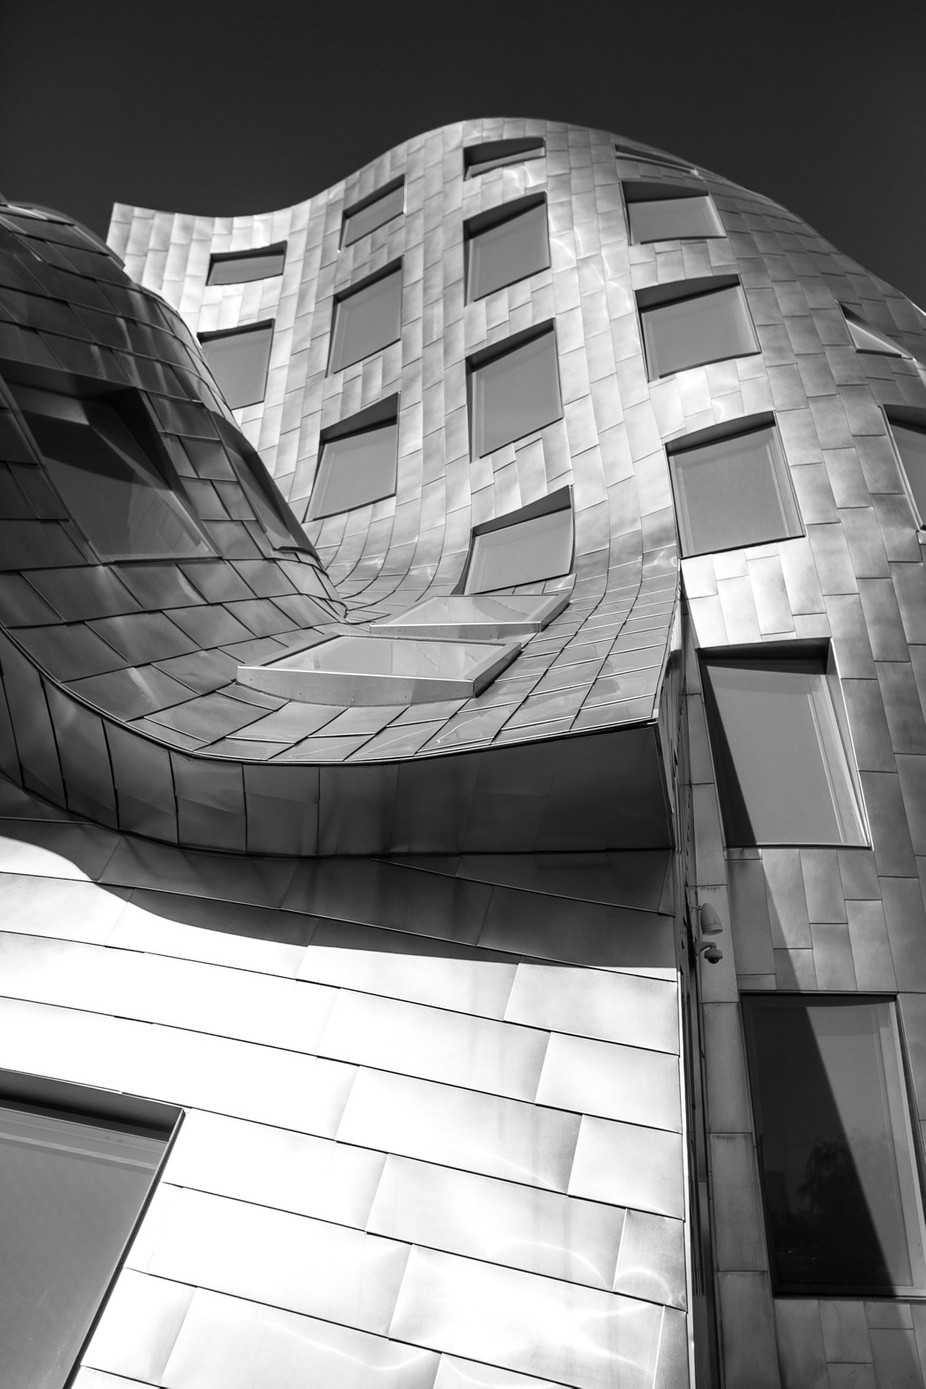 curvededges by LandonWisePhoto - Black And White Architecture Photo Contest